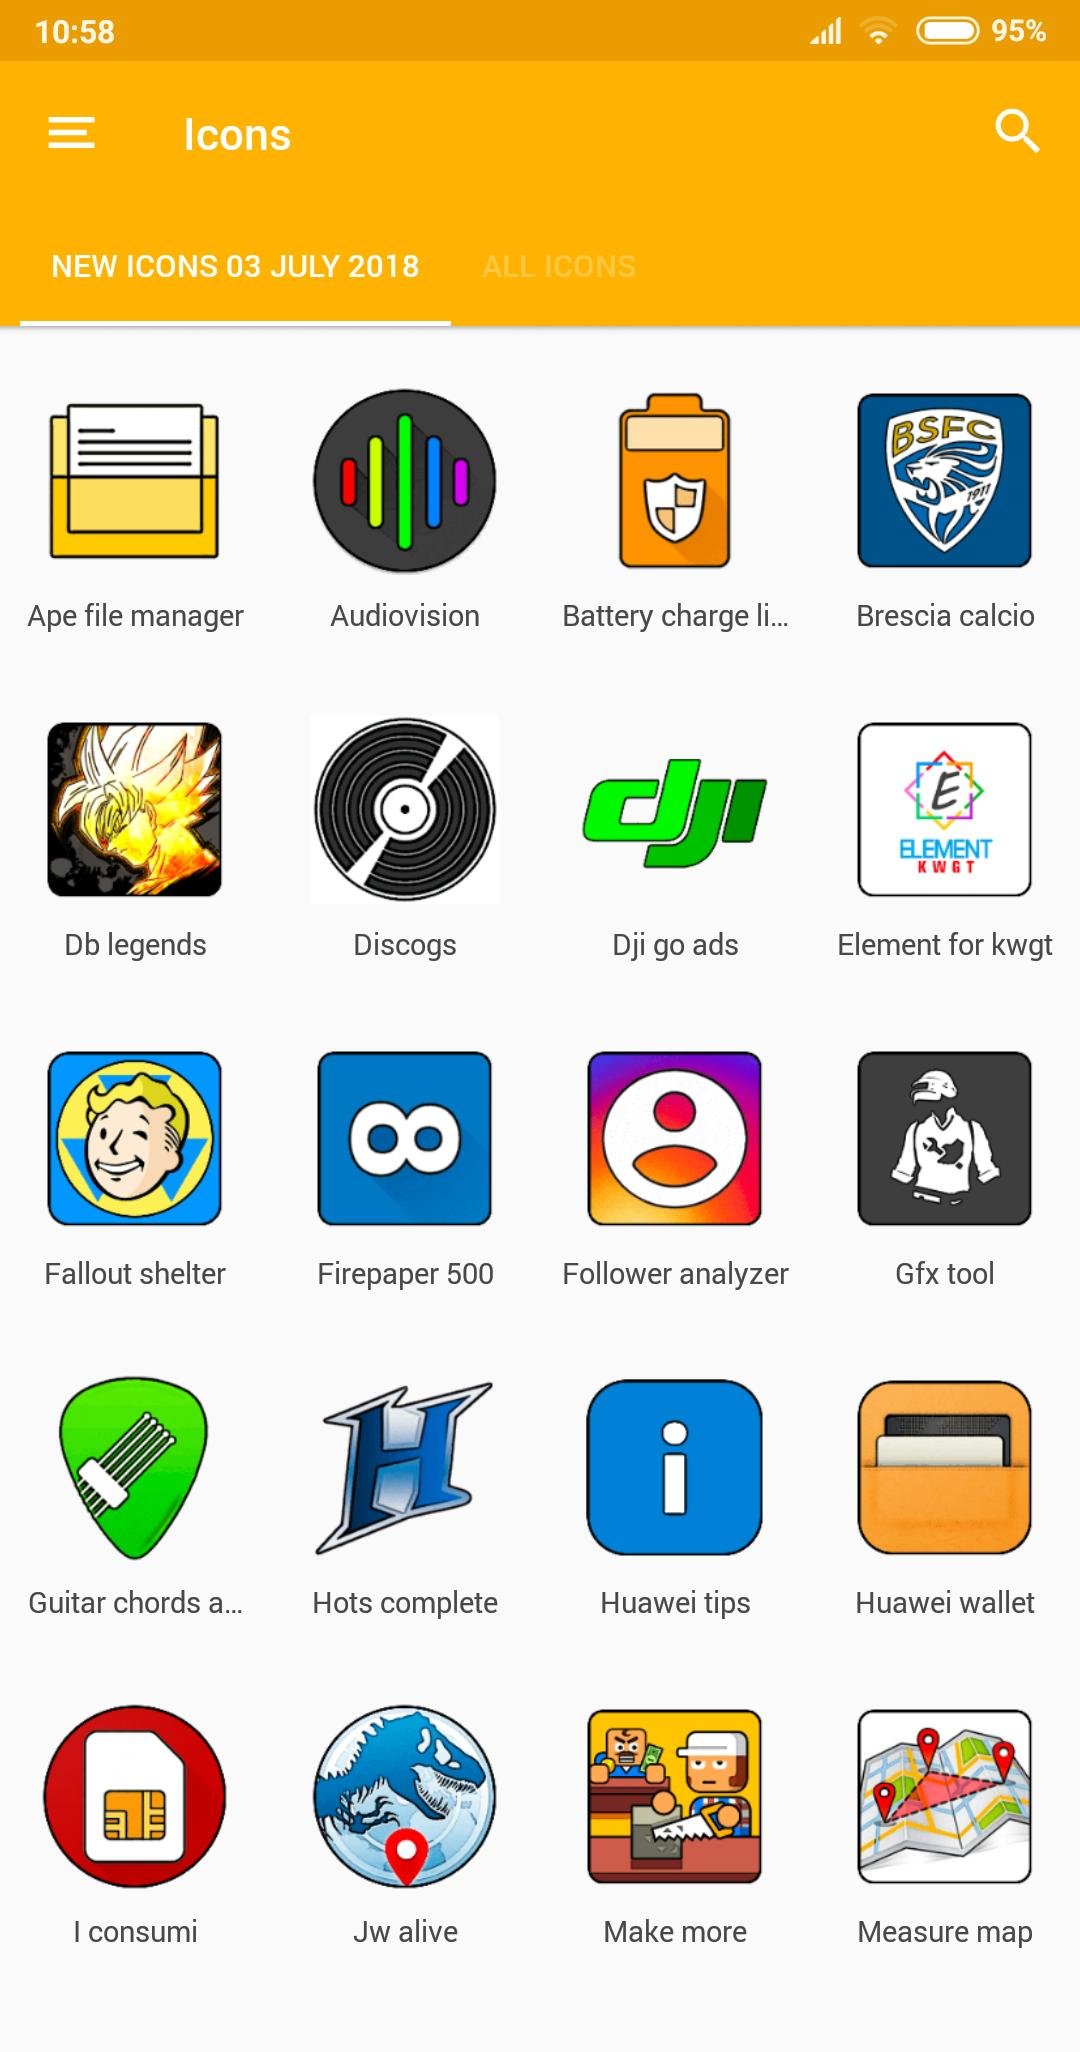 CRISPY HD - ICON PACK for Android - APK Download